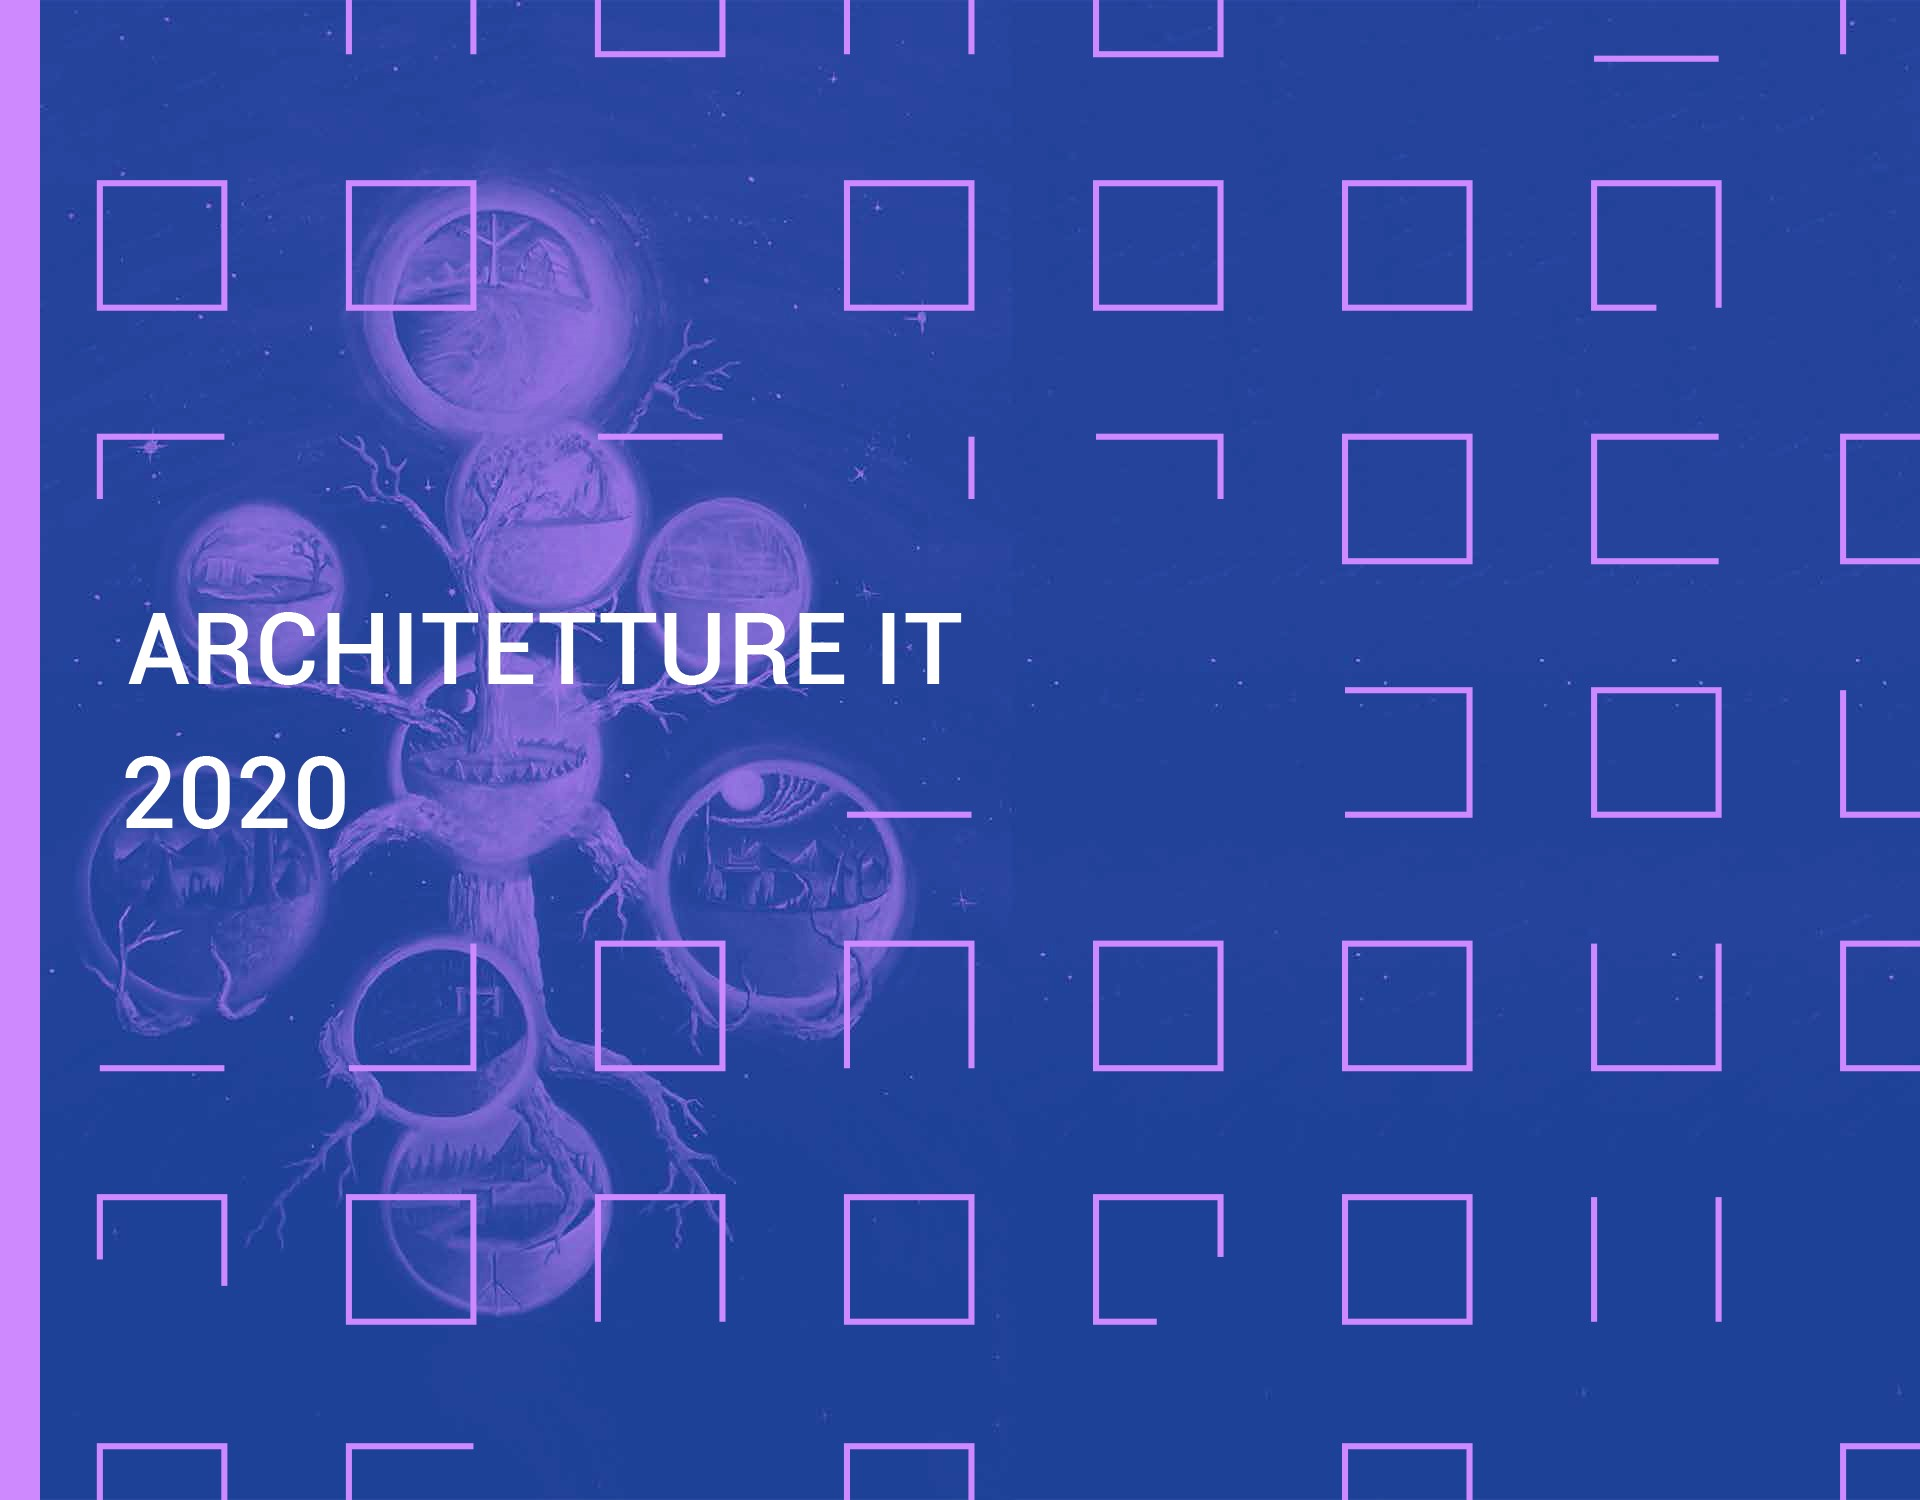 Rapporto Architetture IT in banca 2020 - Un Yggdrasill per l'Enterprise Architecture